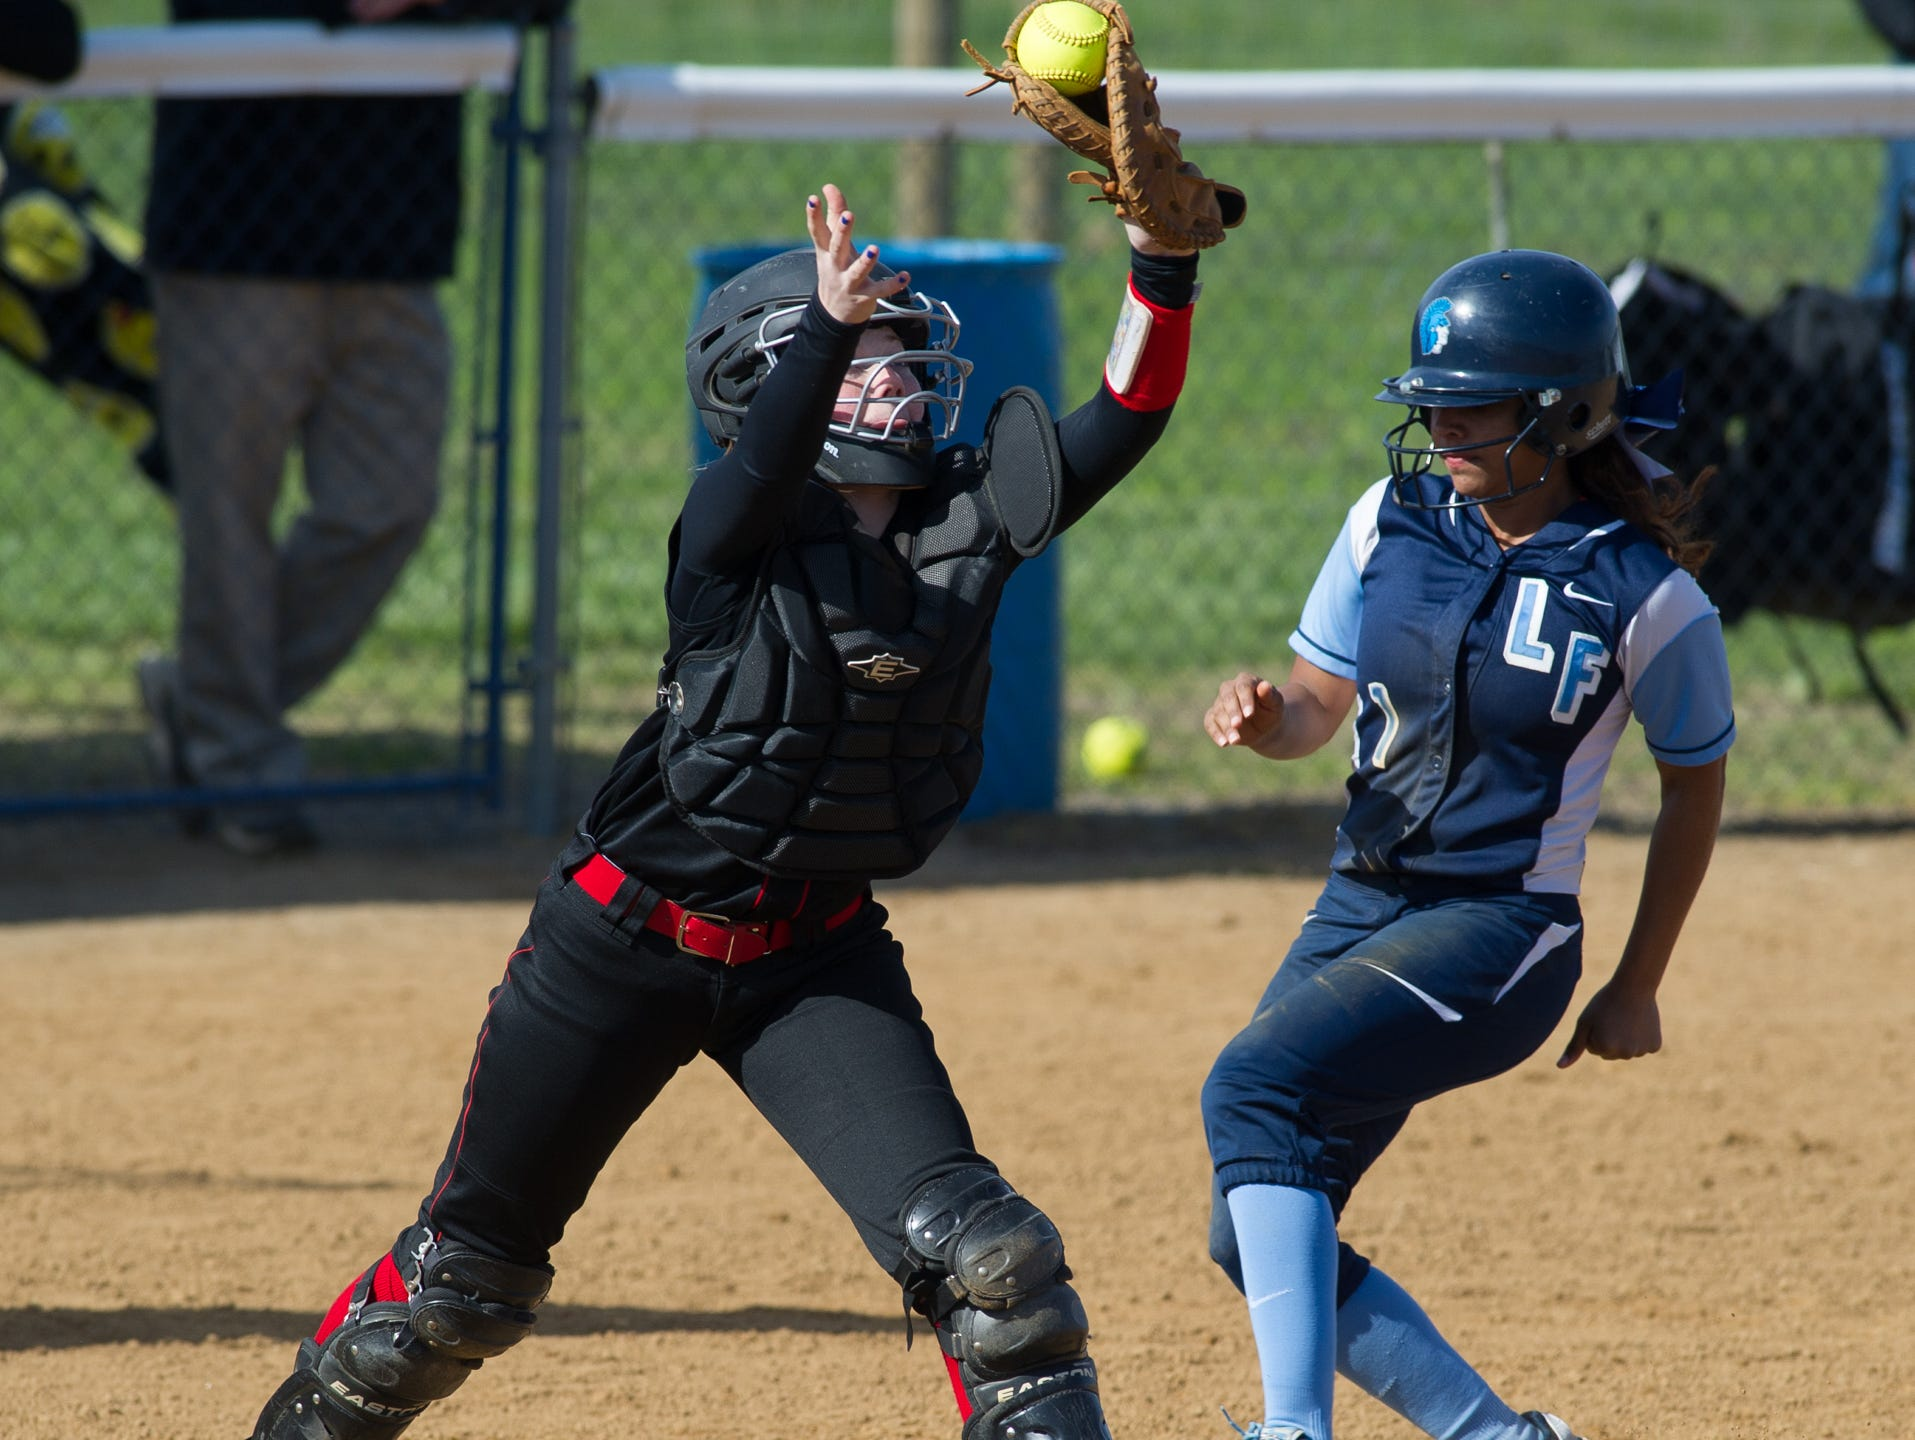 Red Lion's catcher Madelyn Beres (18) tags out Lake Forest's Mya Maddox (1) out at home plate.